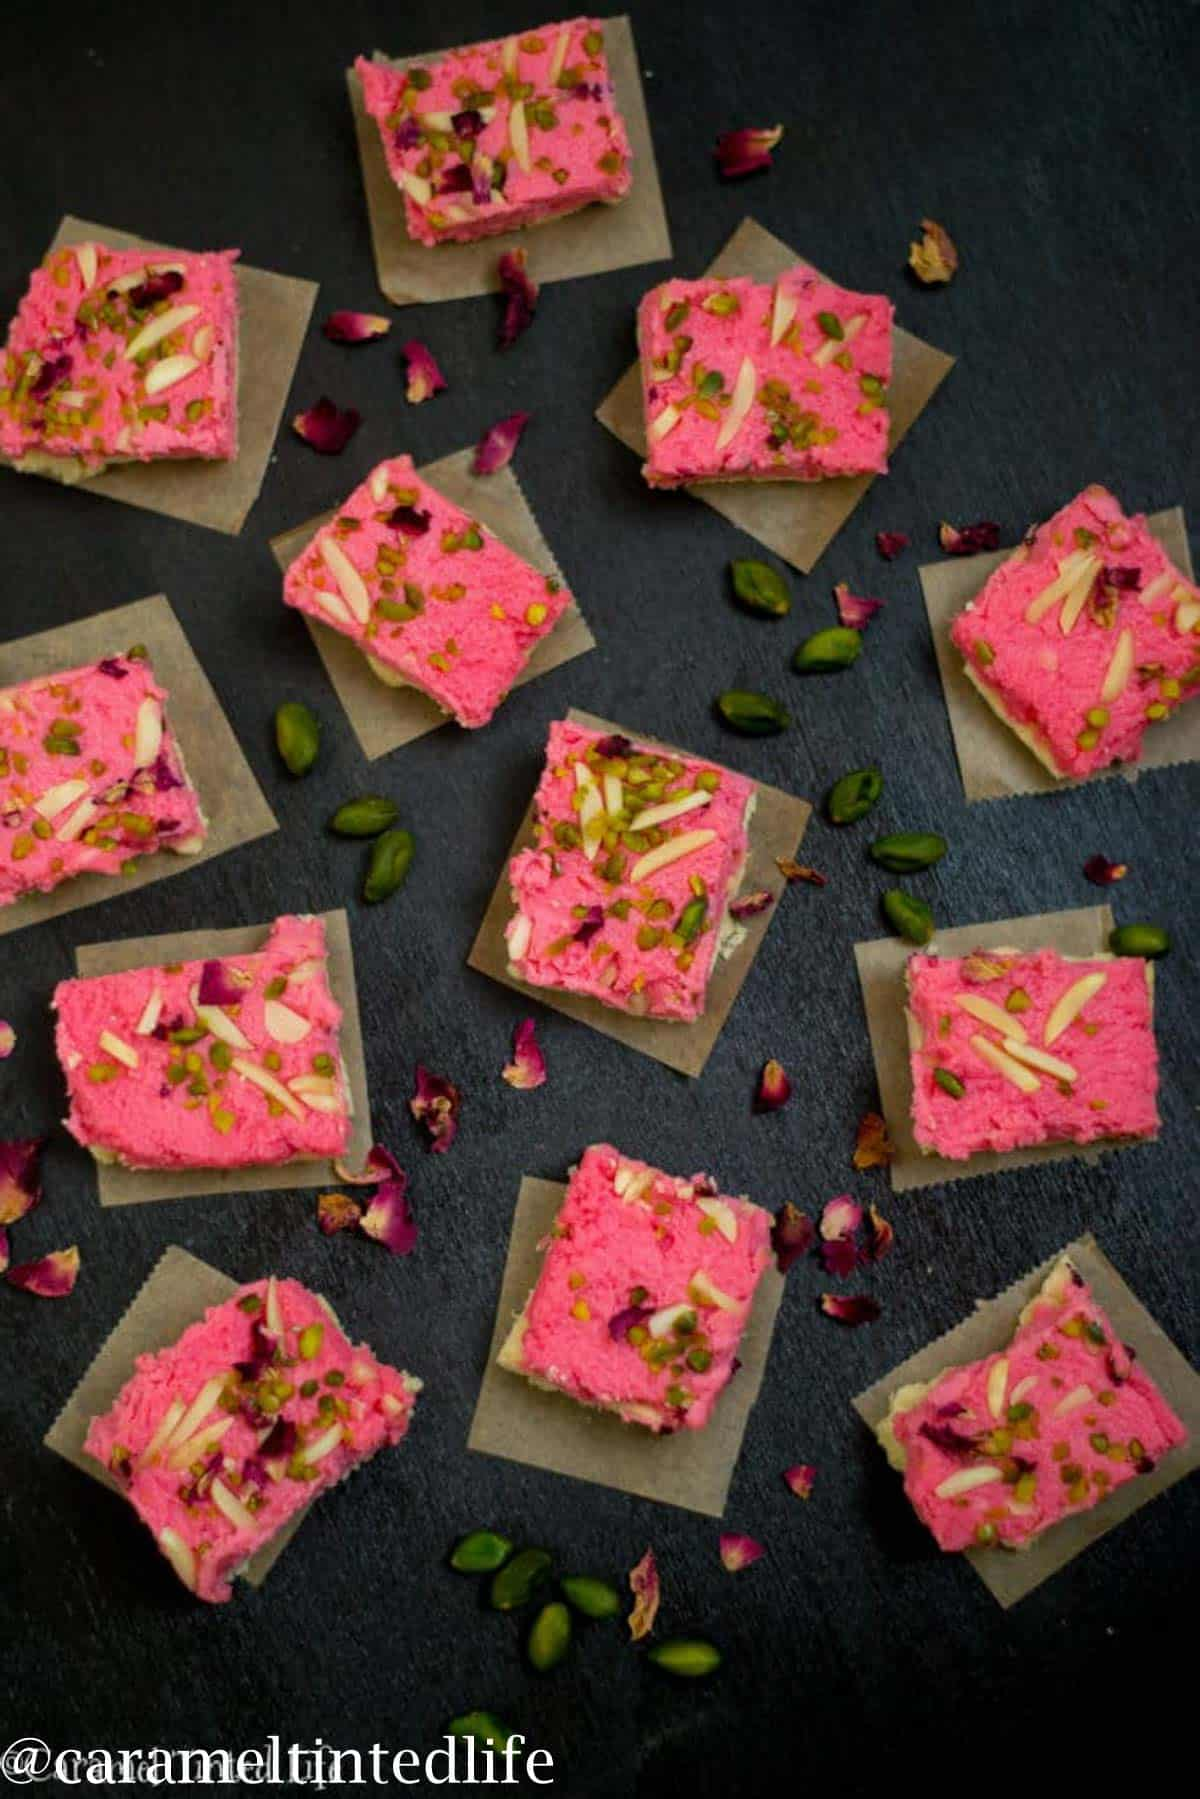 Rose flavored kalankand served on a black serving tray